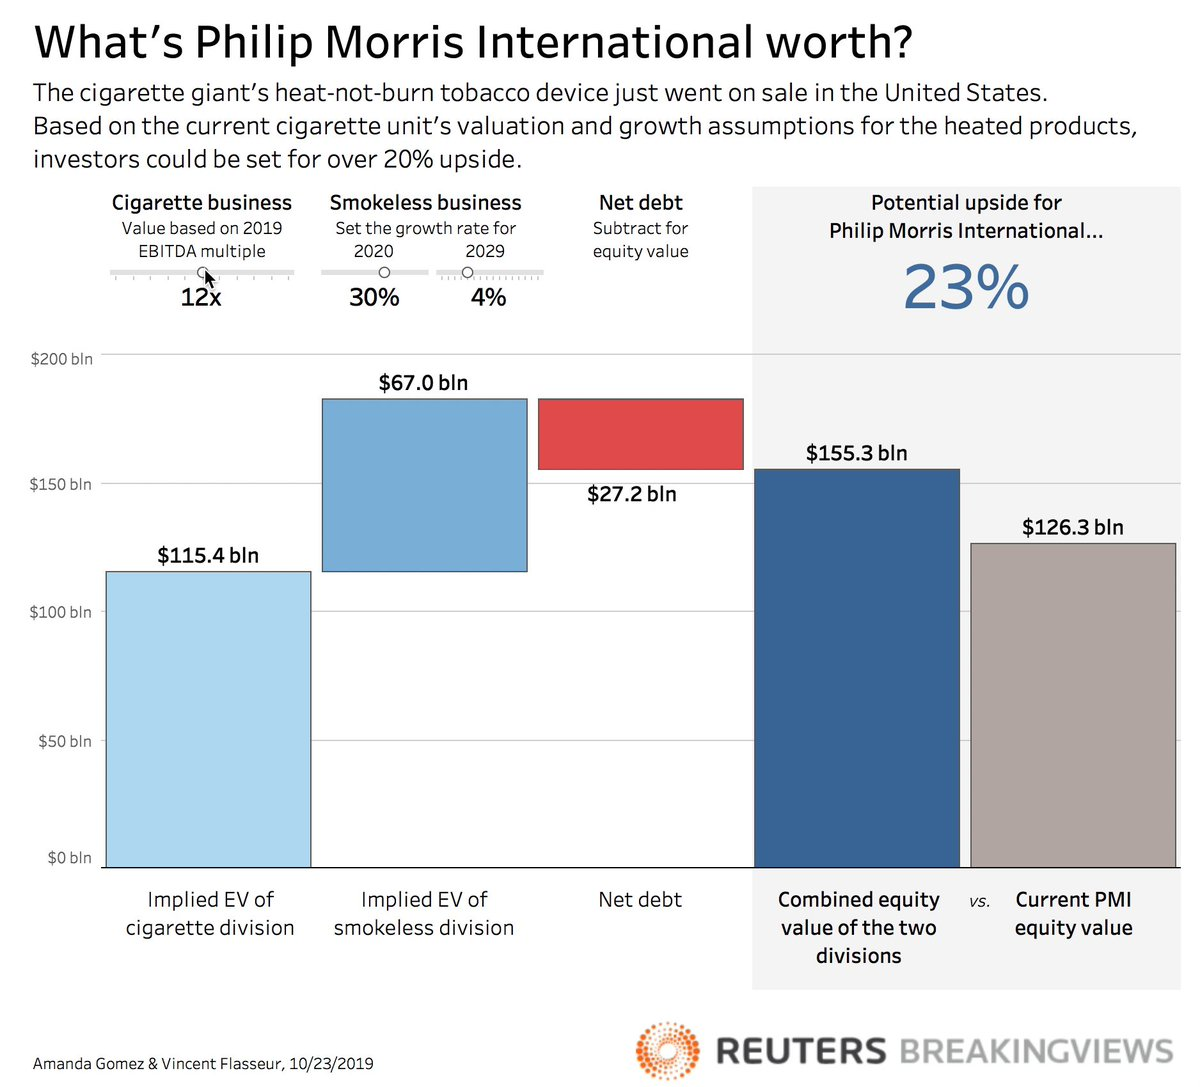 Philip Morris International's heat-not-burn tobacco device just went on sale in the U.S. Based on the current cigarette unit's valuation and growth assumptions for the heated products, investors could be set for more than 20% upside. @alpgomez https://t.co/P4w7AOOJtv https://t.co/6EbDbIc3Zs